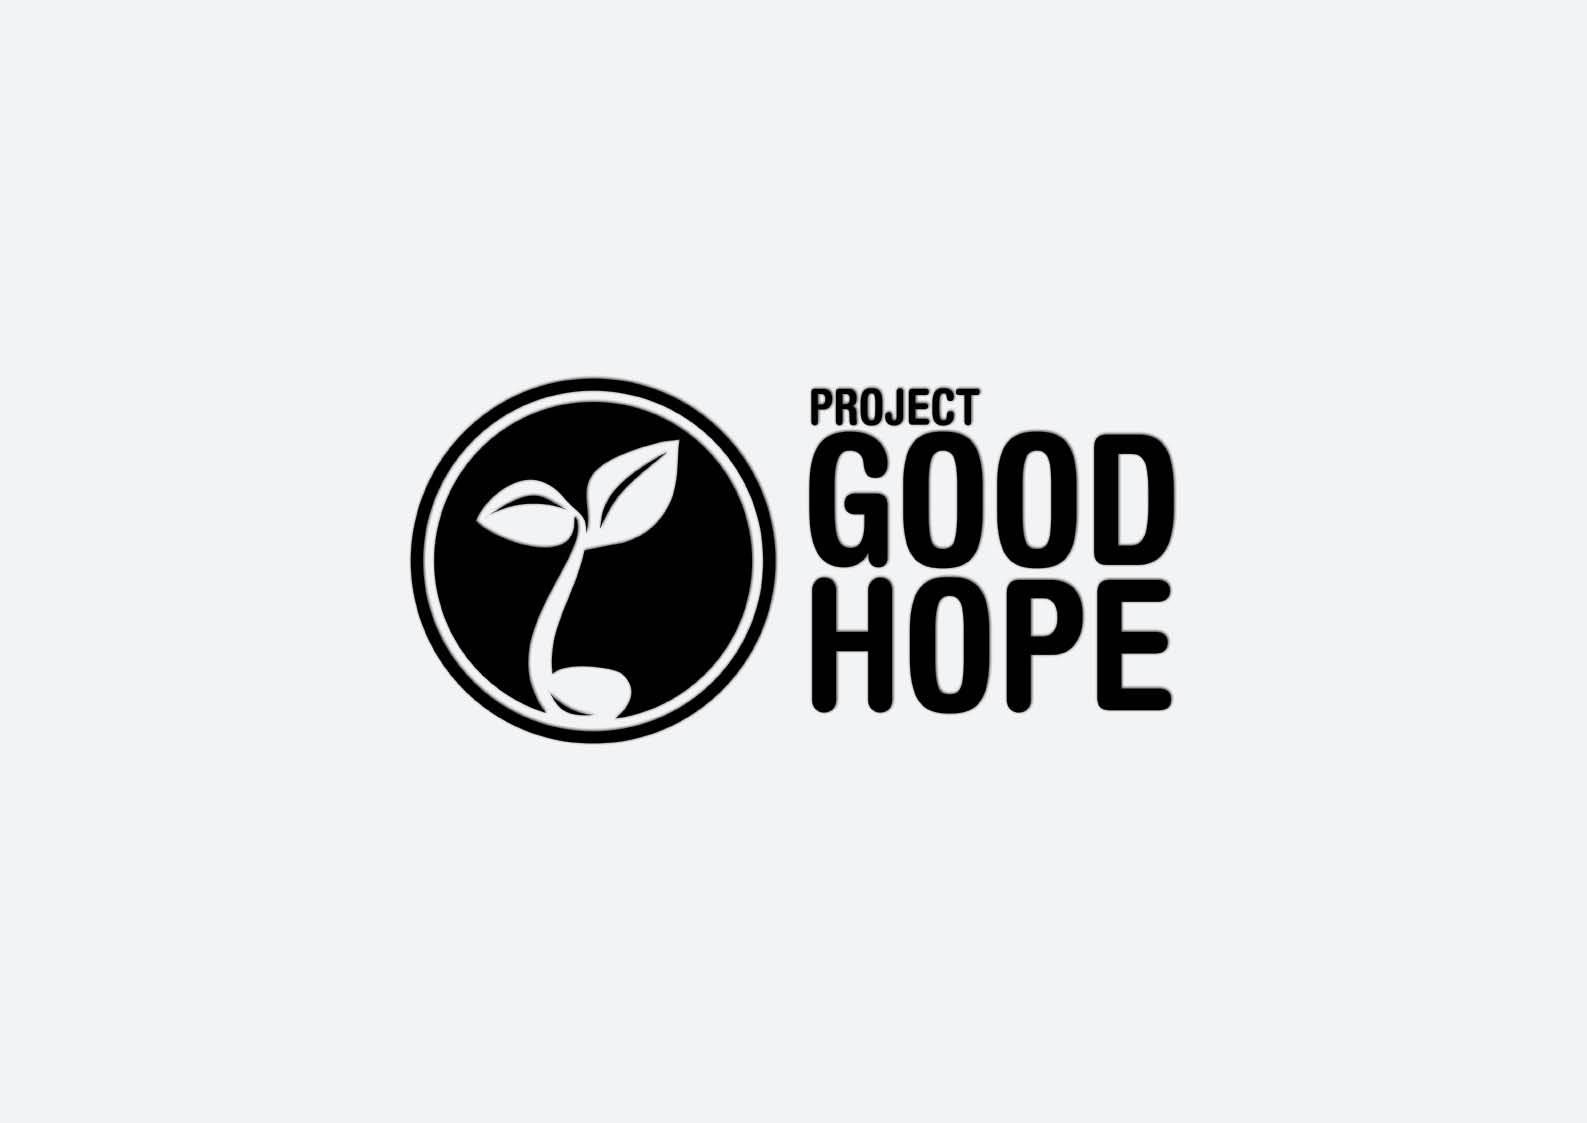 project-good-hope-02